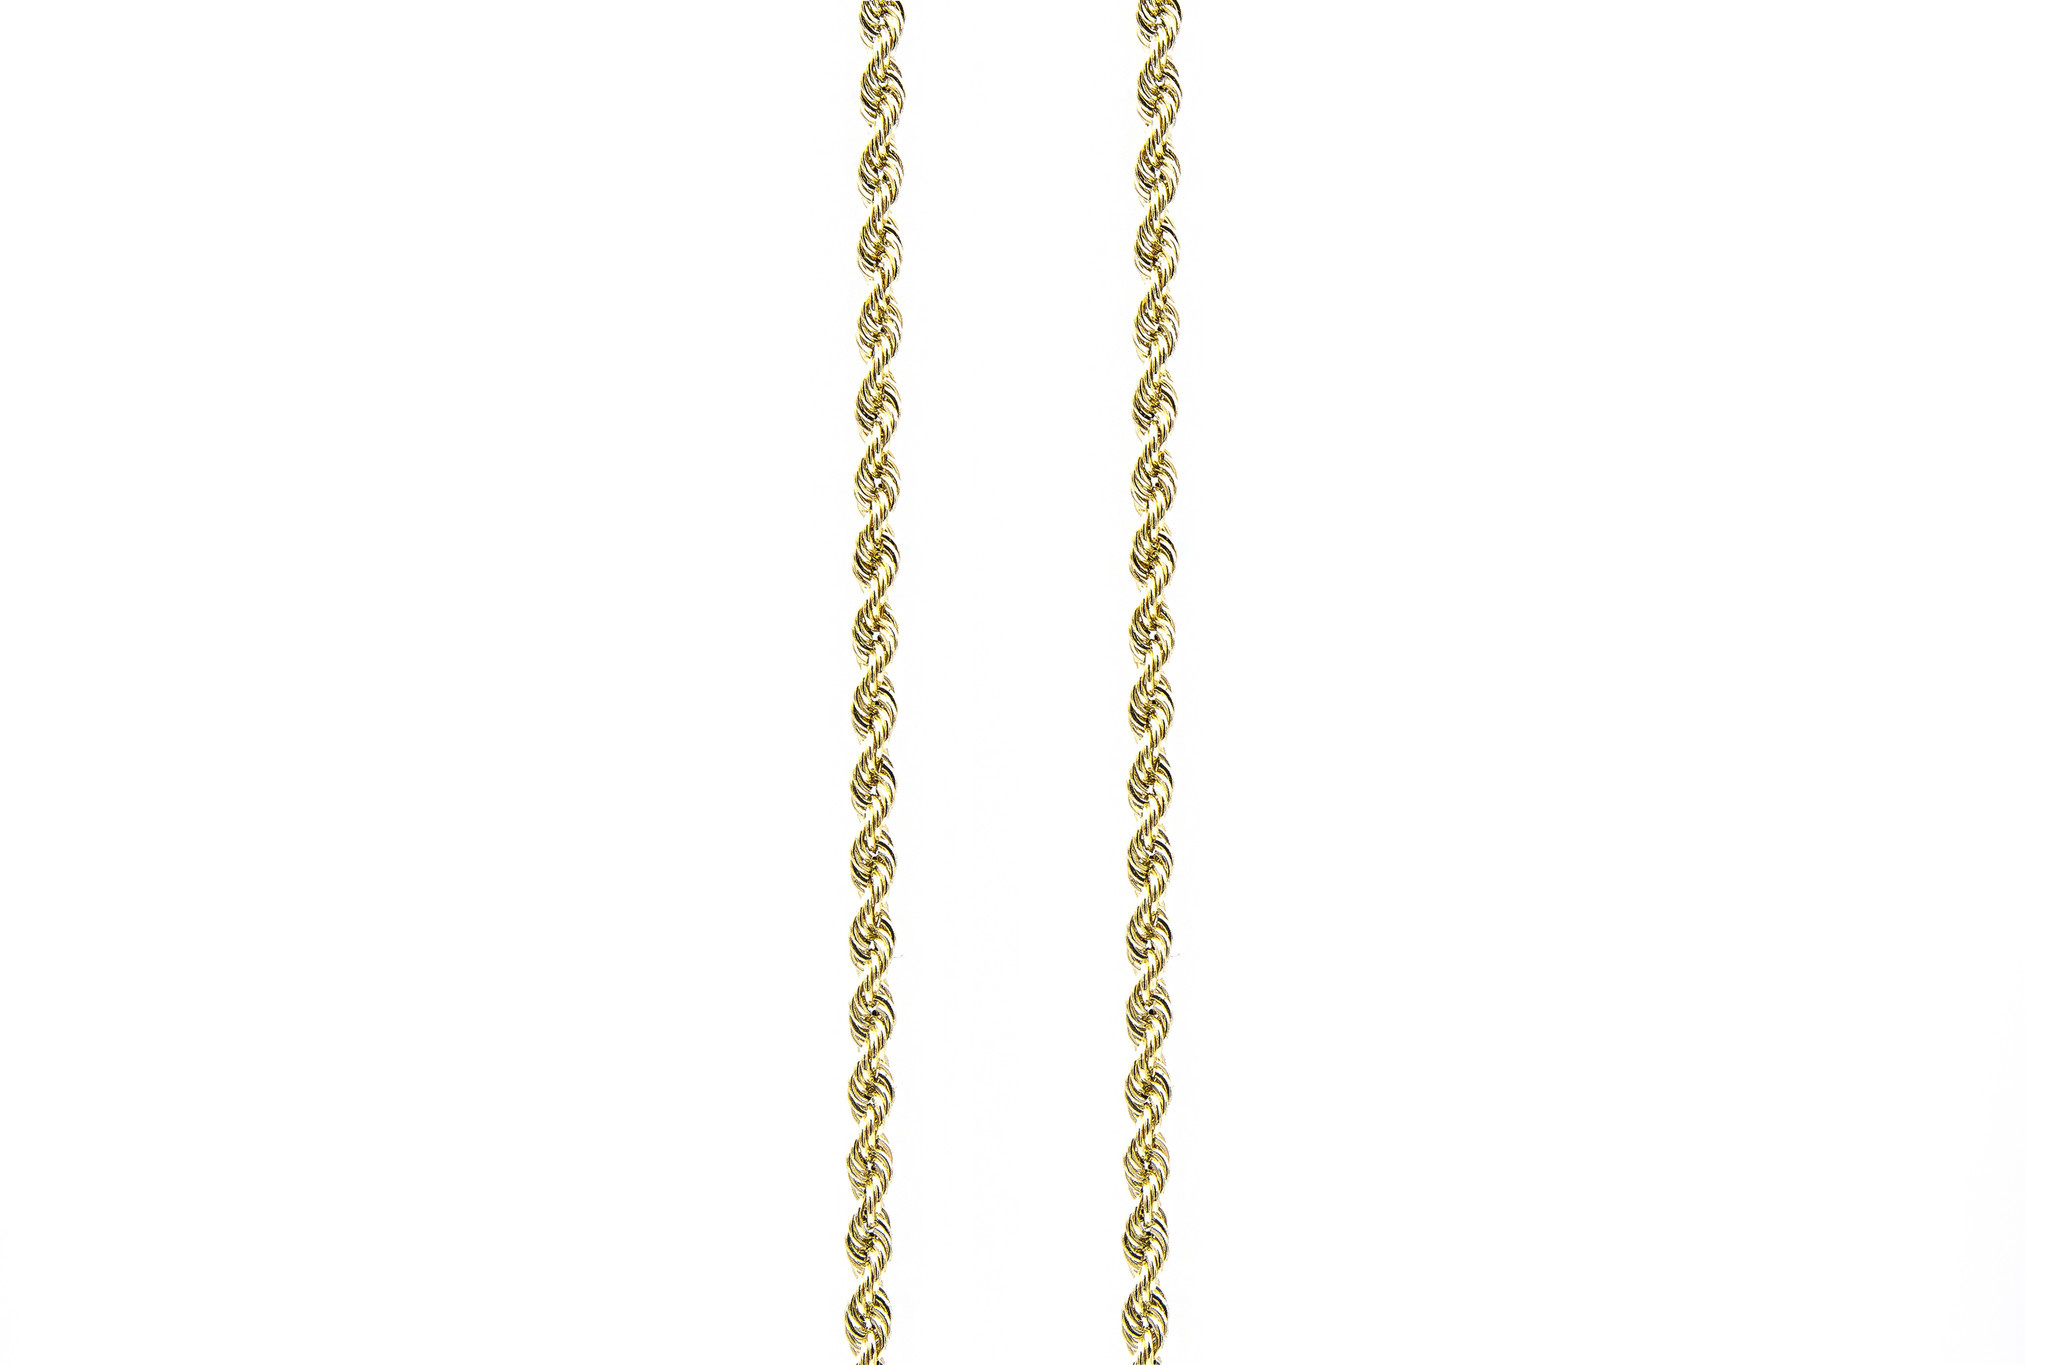 Rope Chain NL 18k-5 mm-1